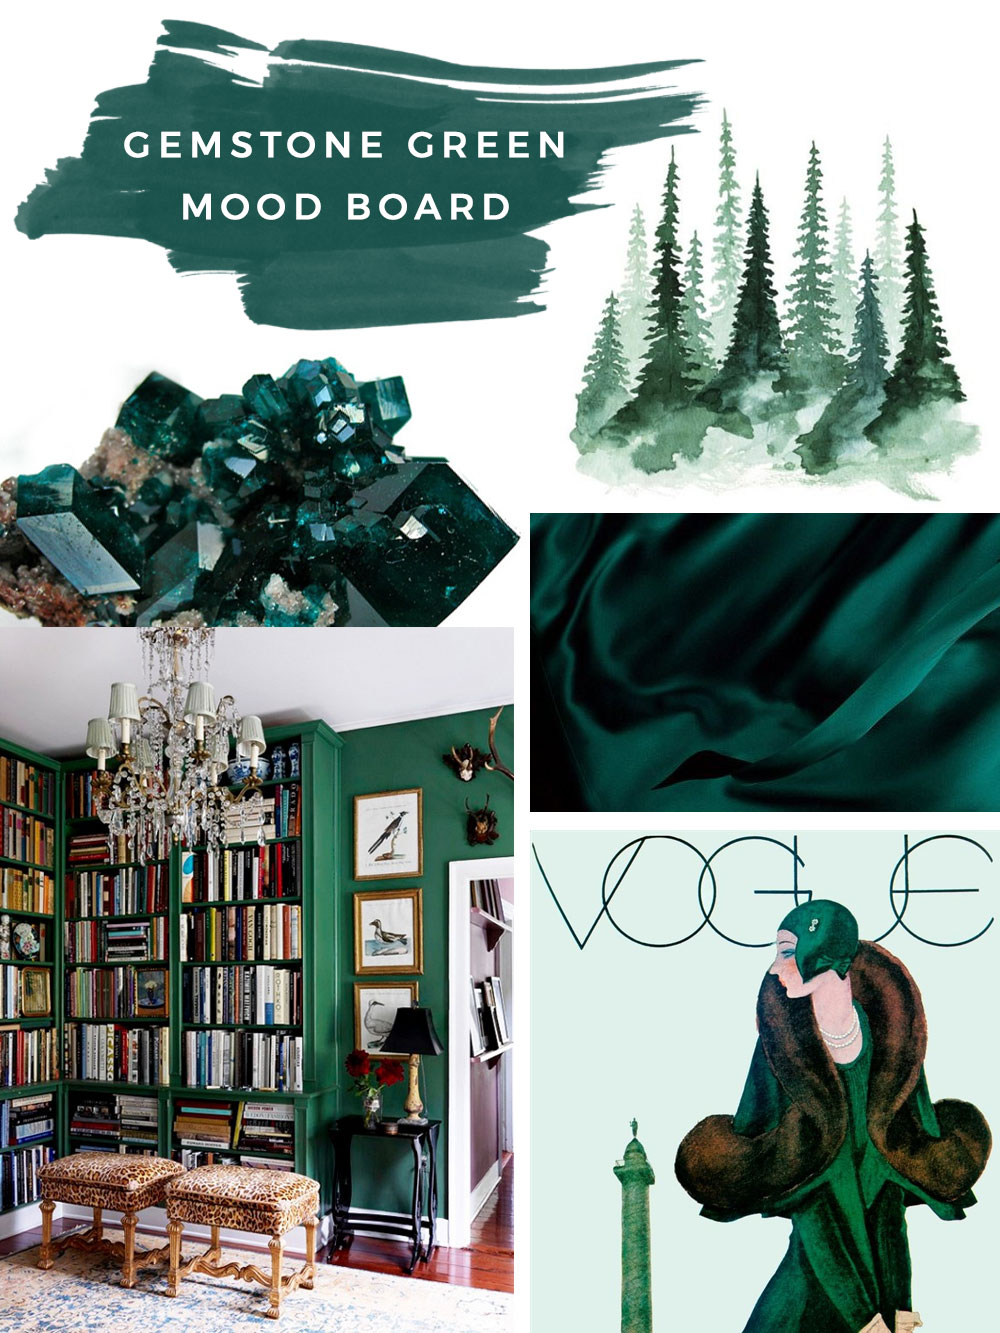 Gemstone Green Mood Board